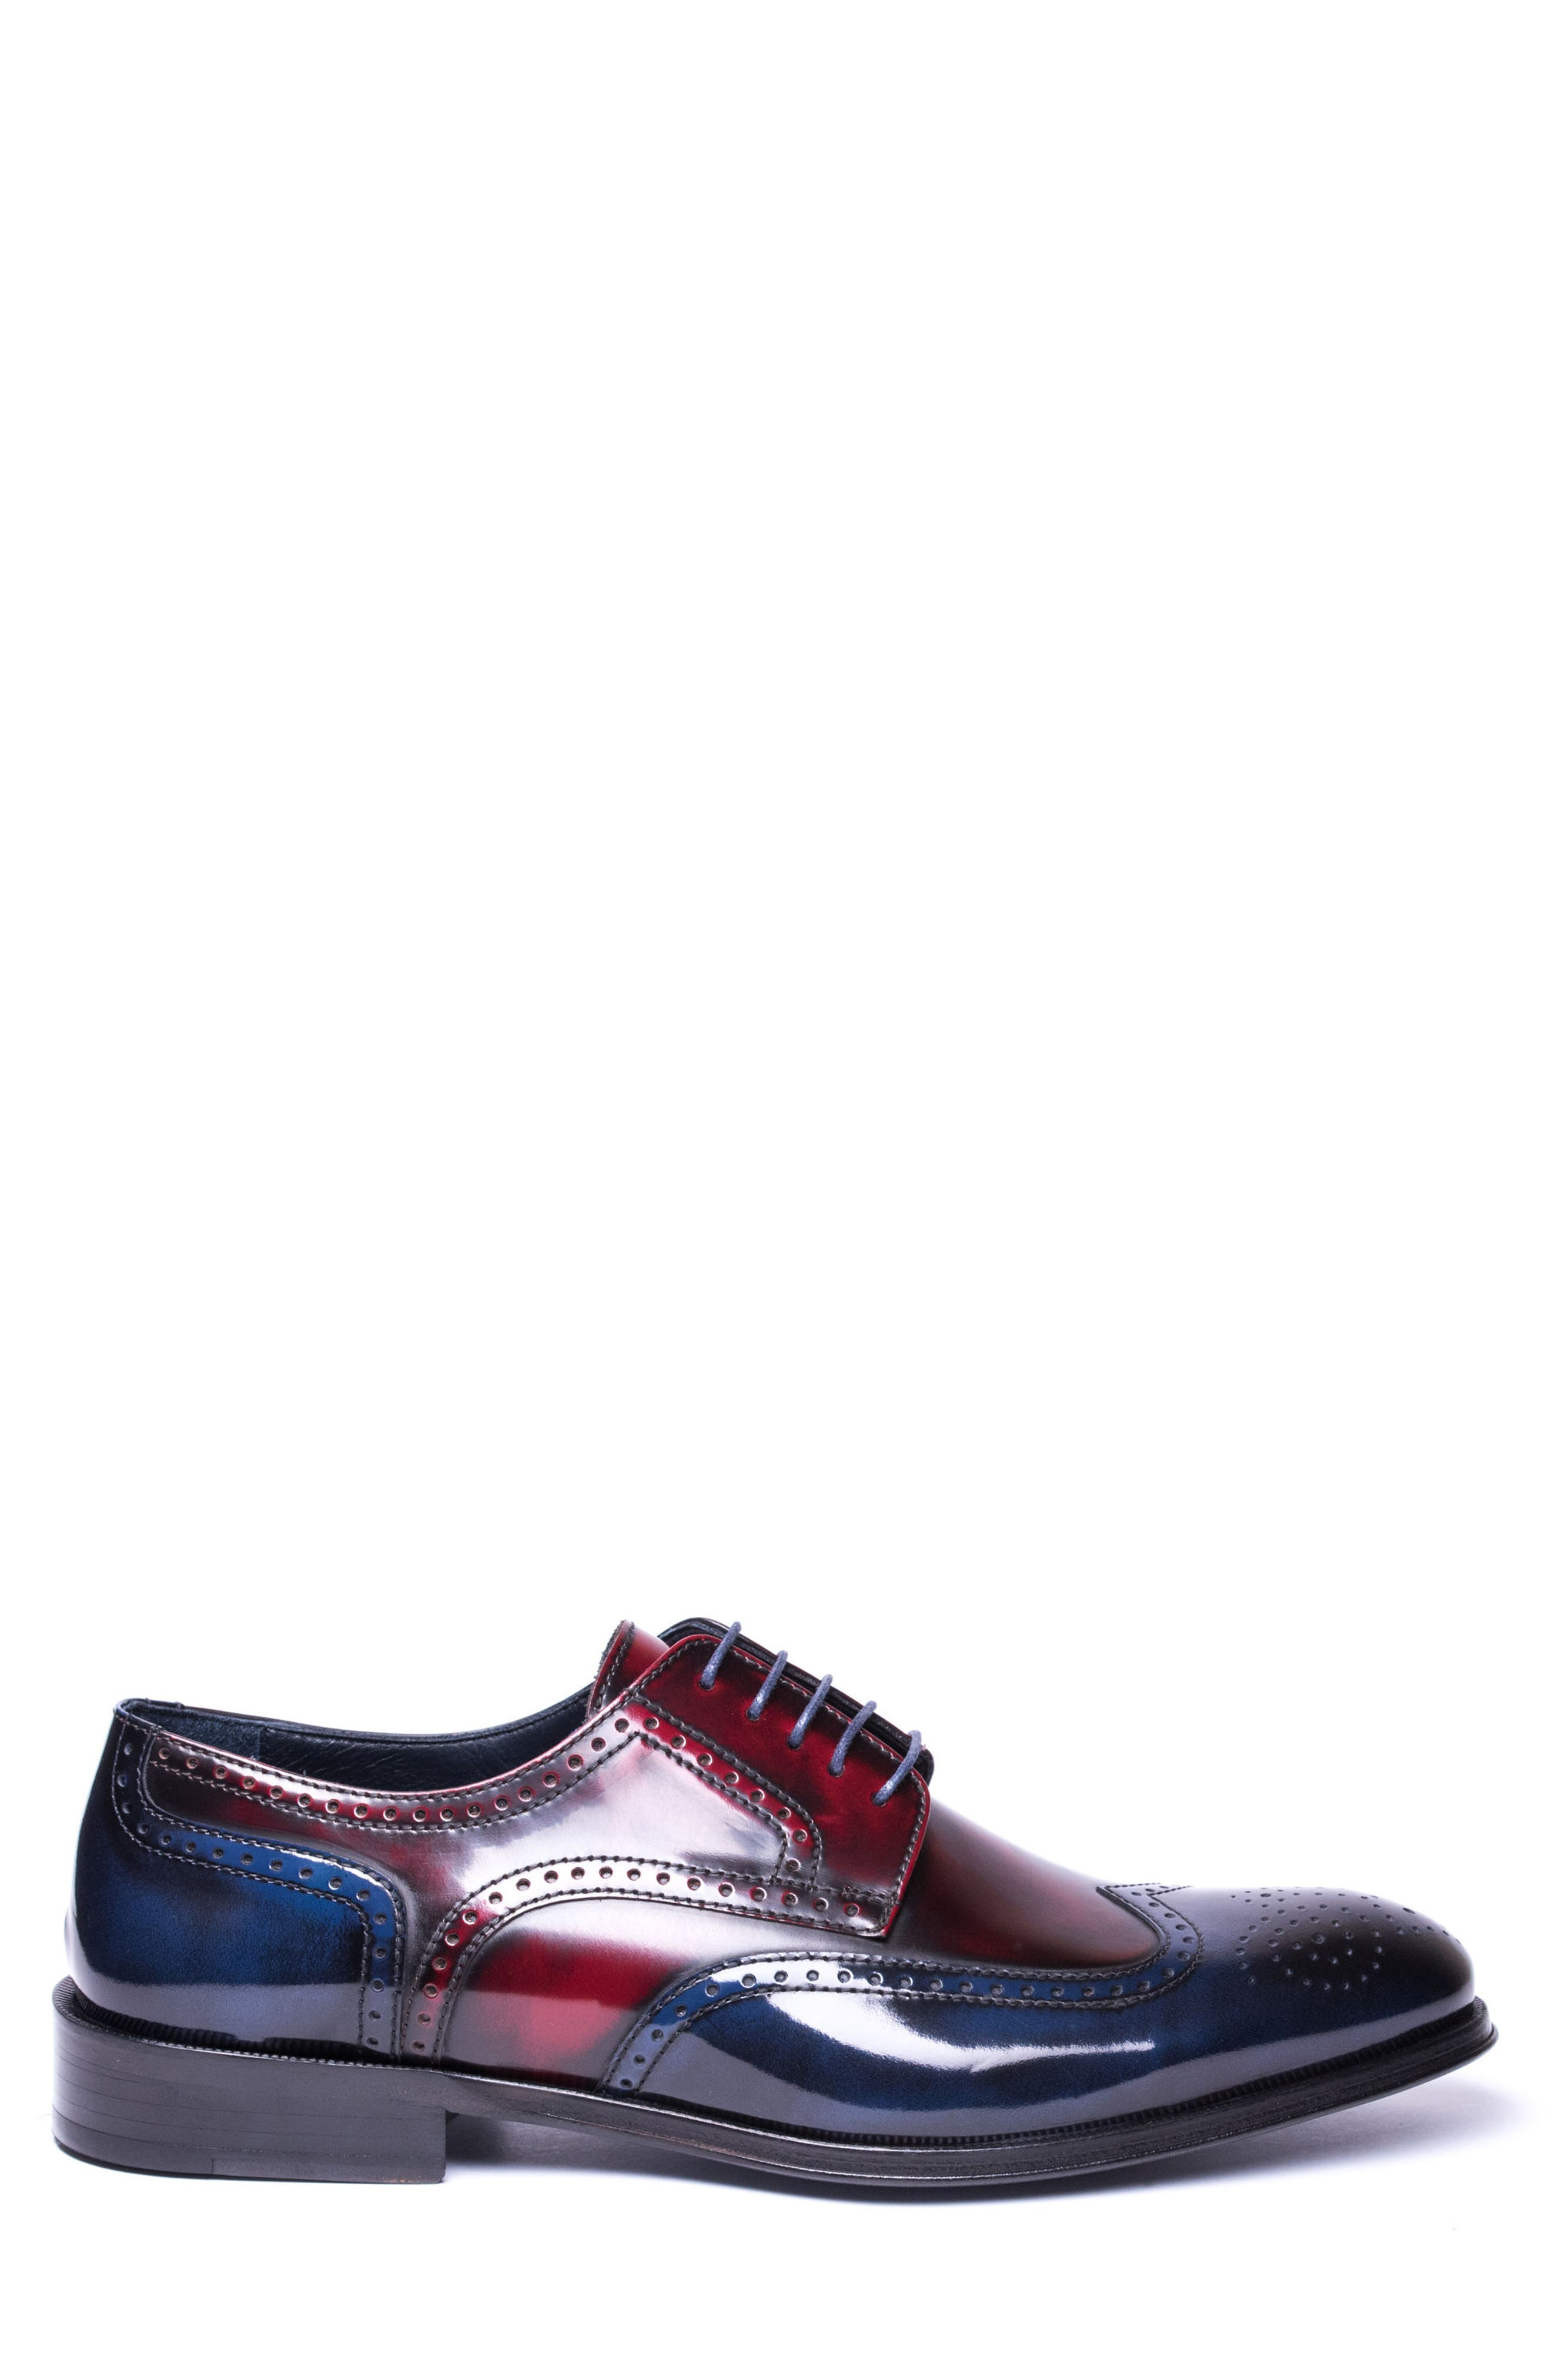 Bryce Wingtip Derby,                             Alternate thumbnail 3, color,                             RED/ BLUE LEATHER